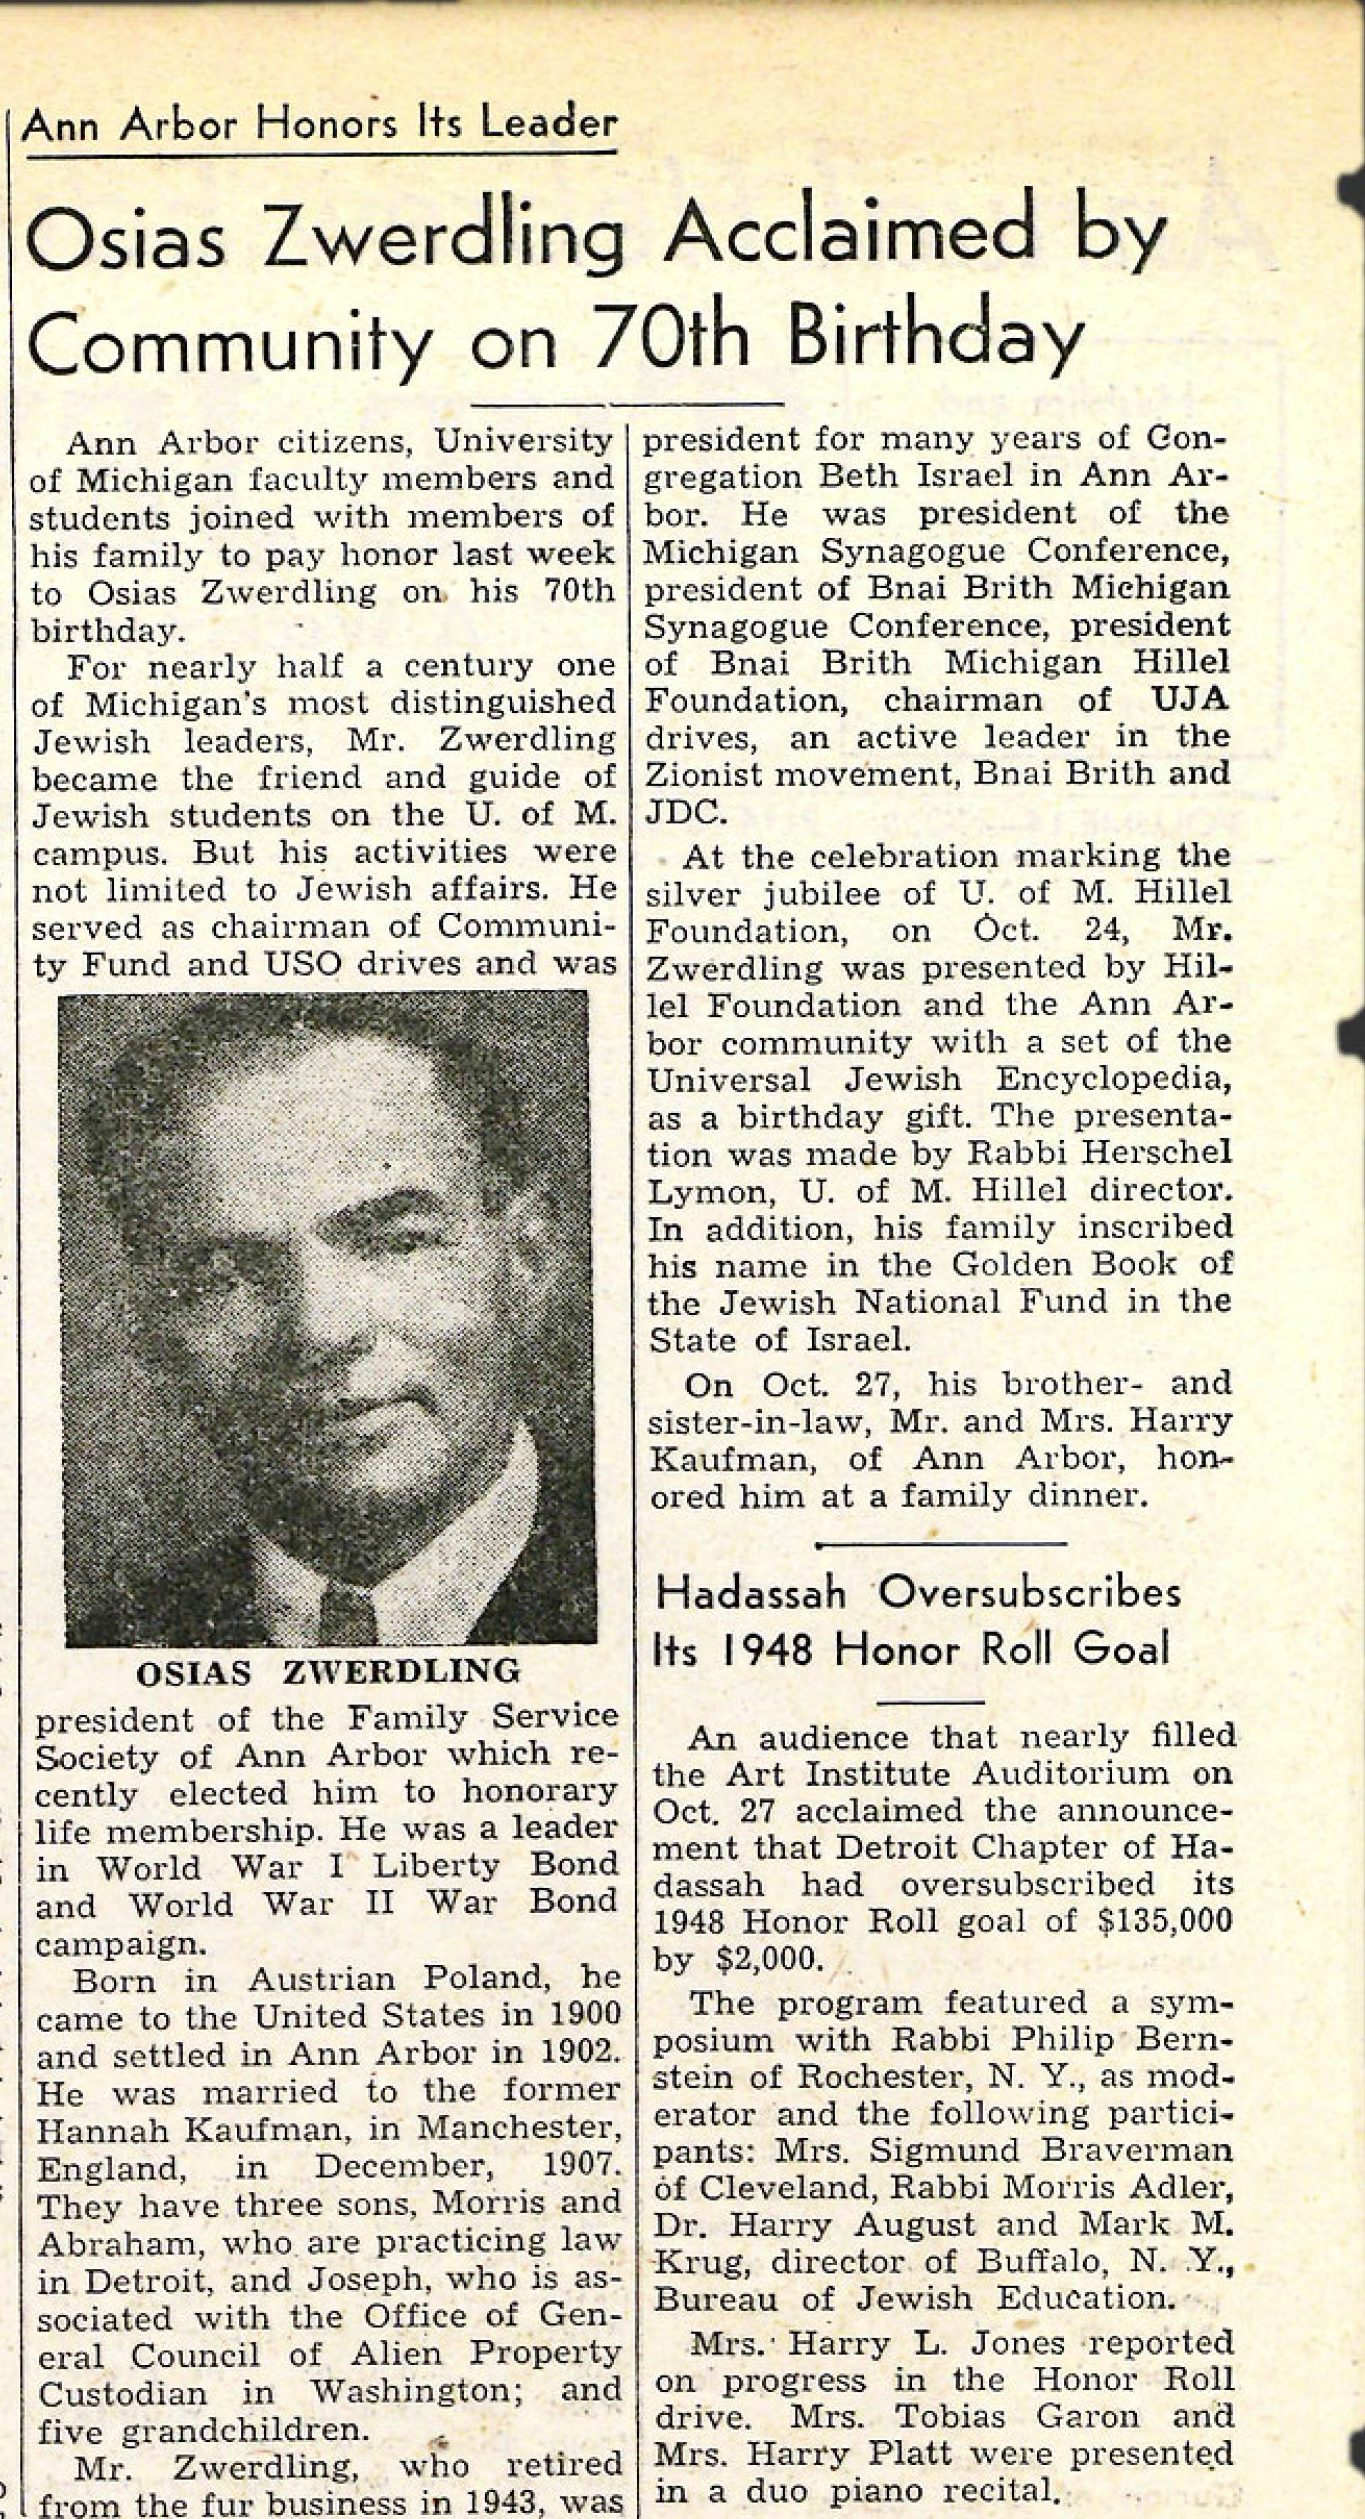 Osias Zwerdling in the Nov. 5, 1948, issue of the JN that reported that Zwerdling's friends, citizens of Ann Arbor, and University of Michigan faculty and students were celebrating his 70th birthday.